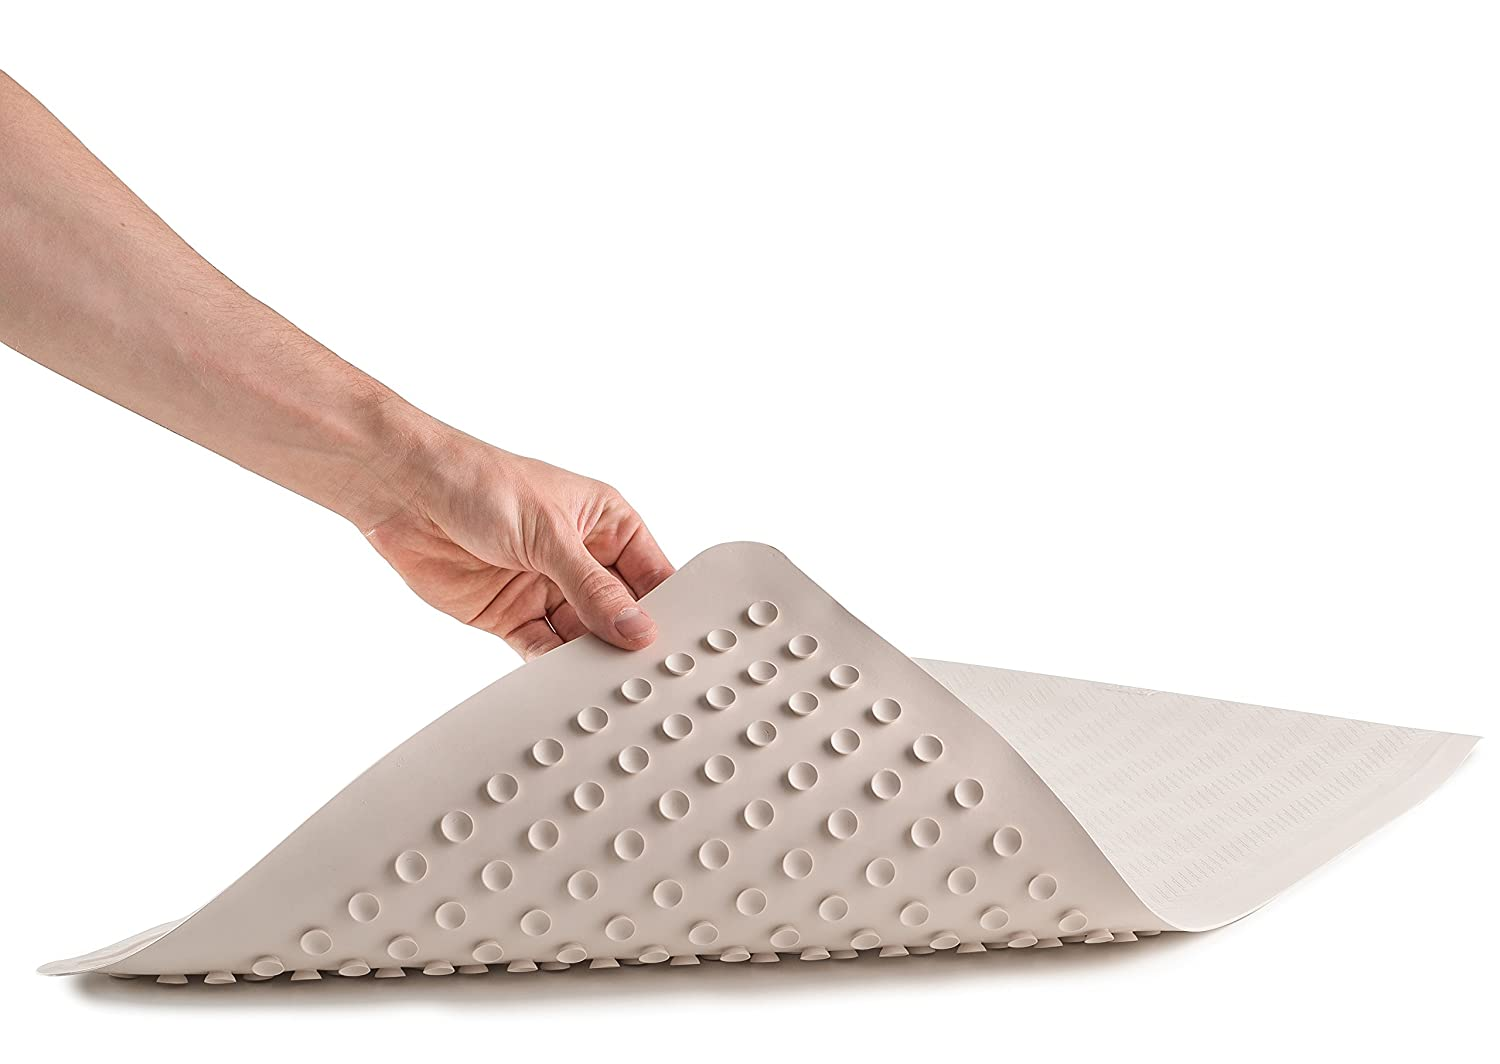 Epica Anti Slip Machine Washable Anti Bacterial Bath Mat 16 x 28 Natural Rubber